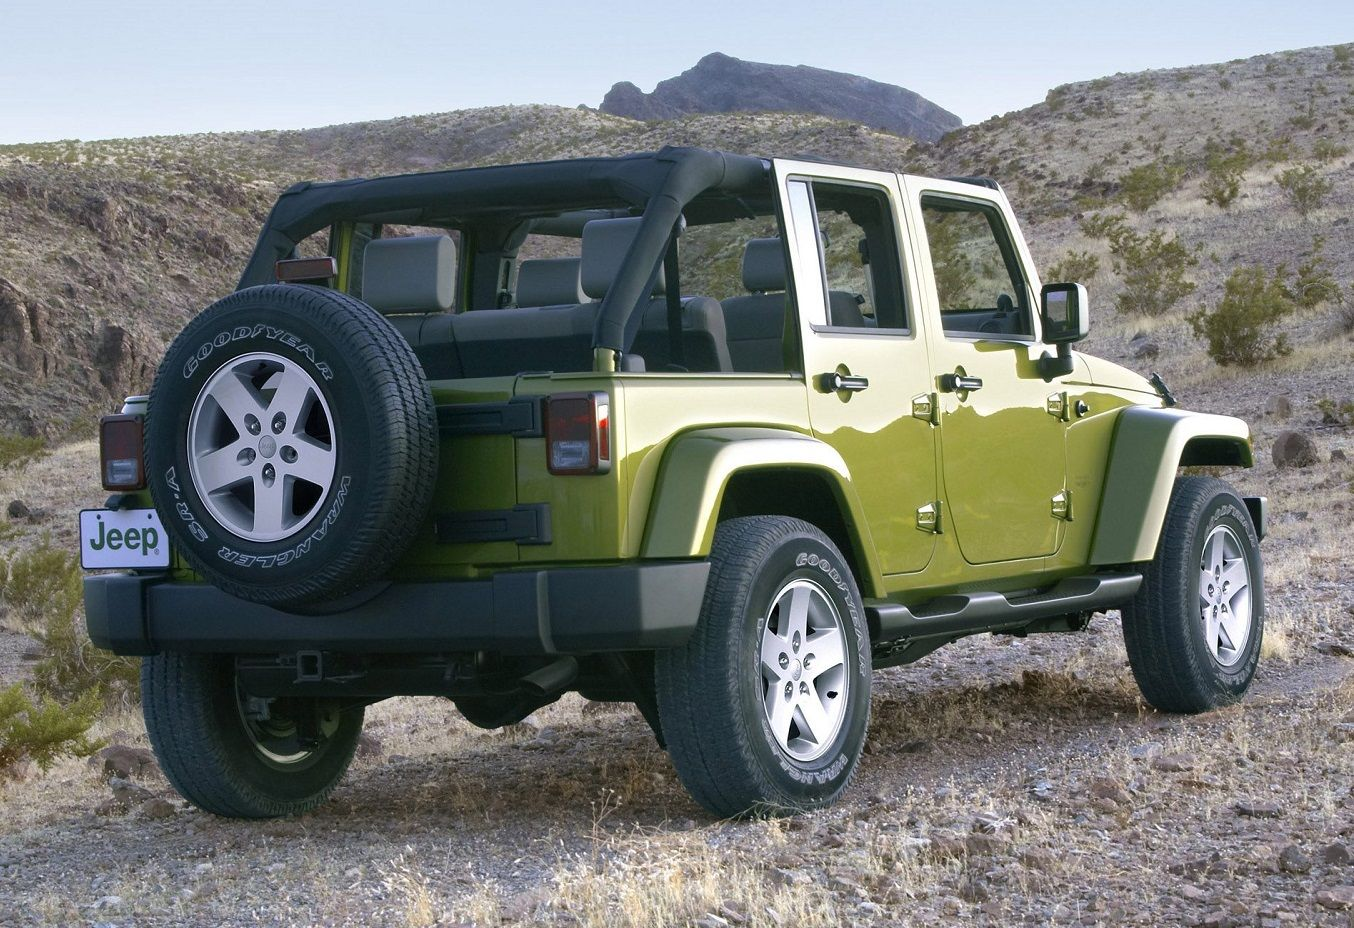 Jeep Wrangler Unlimited Sport 4x4 Reviews And Sales The Videos Below  Provide You With Detail Reviews